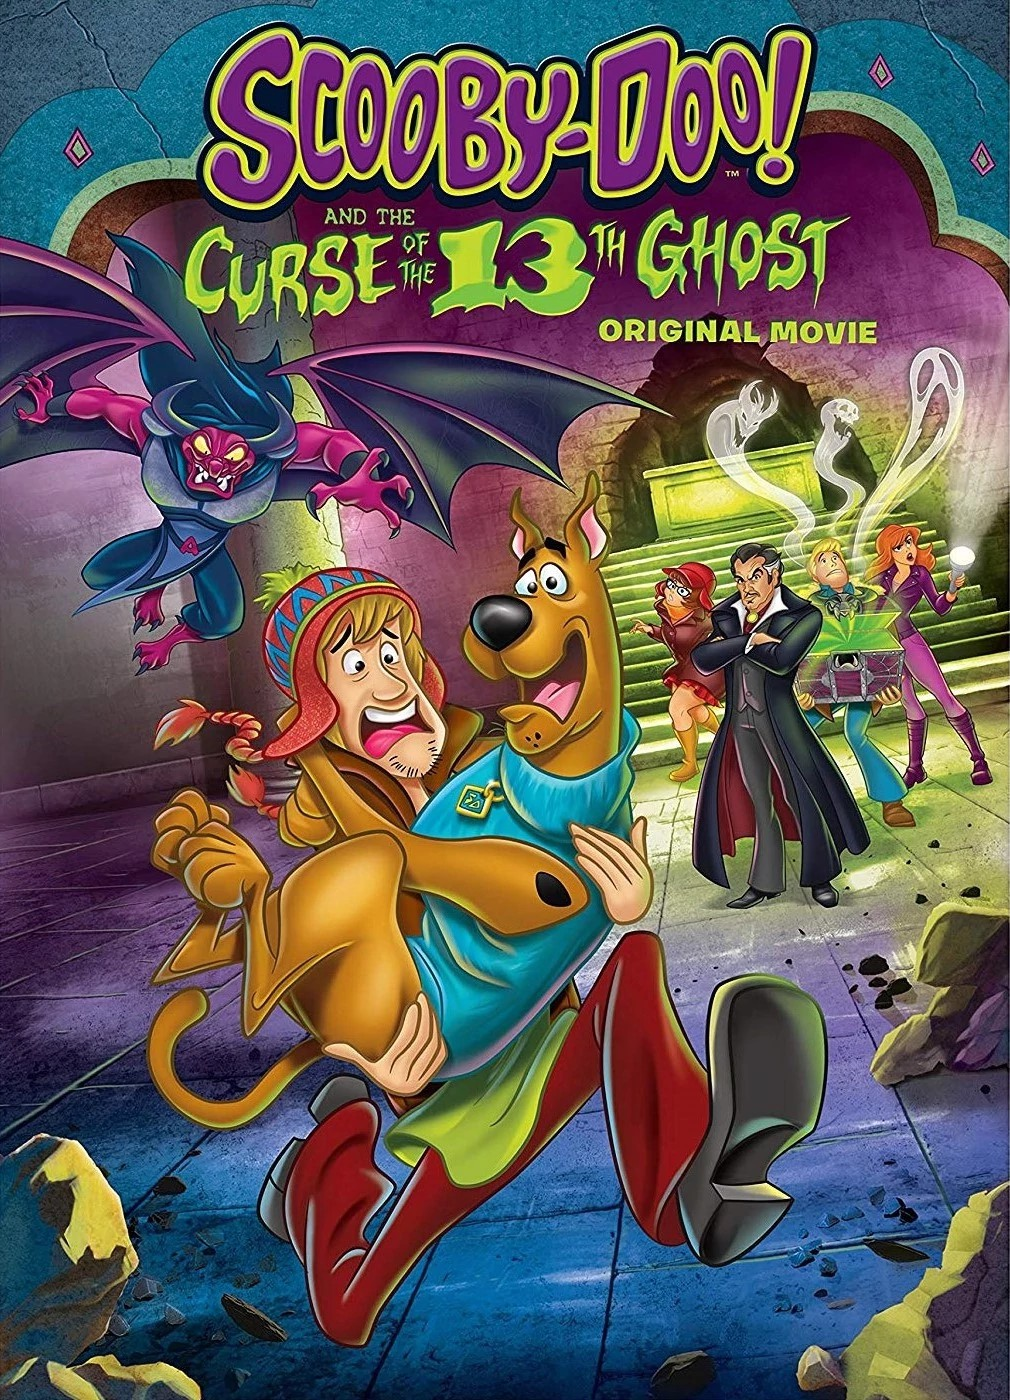 SCOOBY-DOO! AND THE CURSE OF THE 13TH GHOST (2019) online